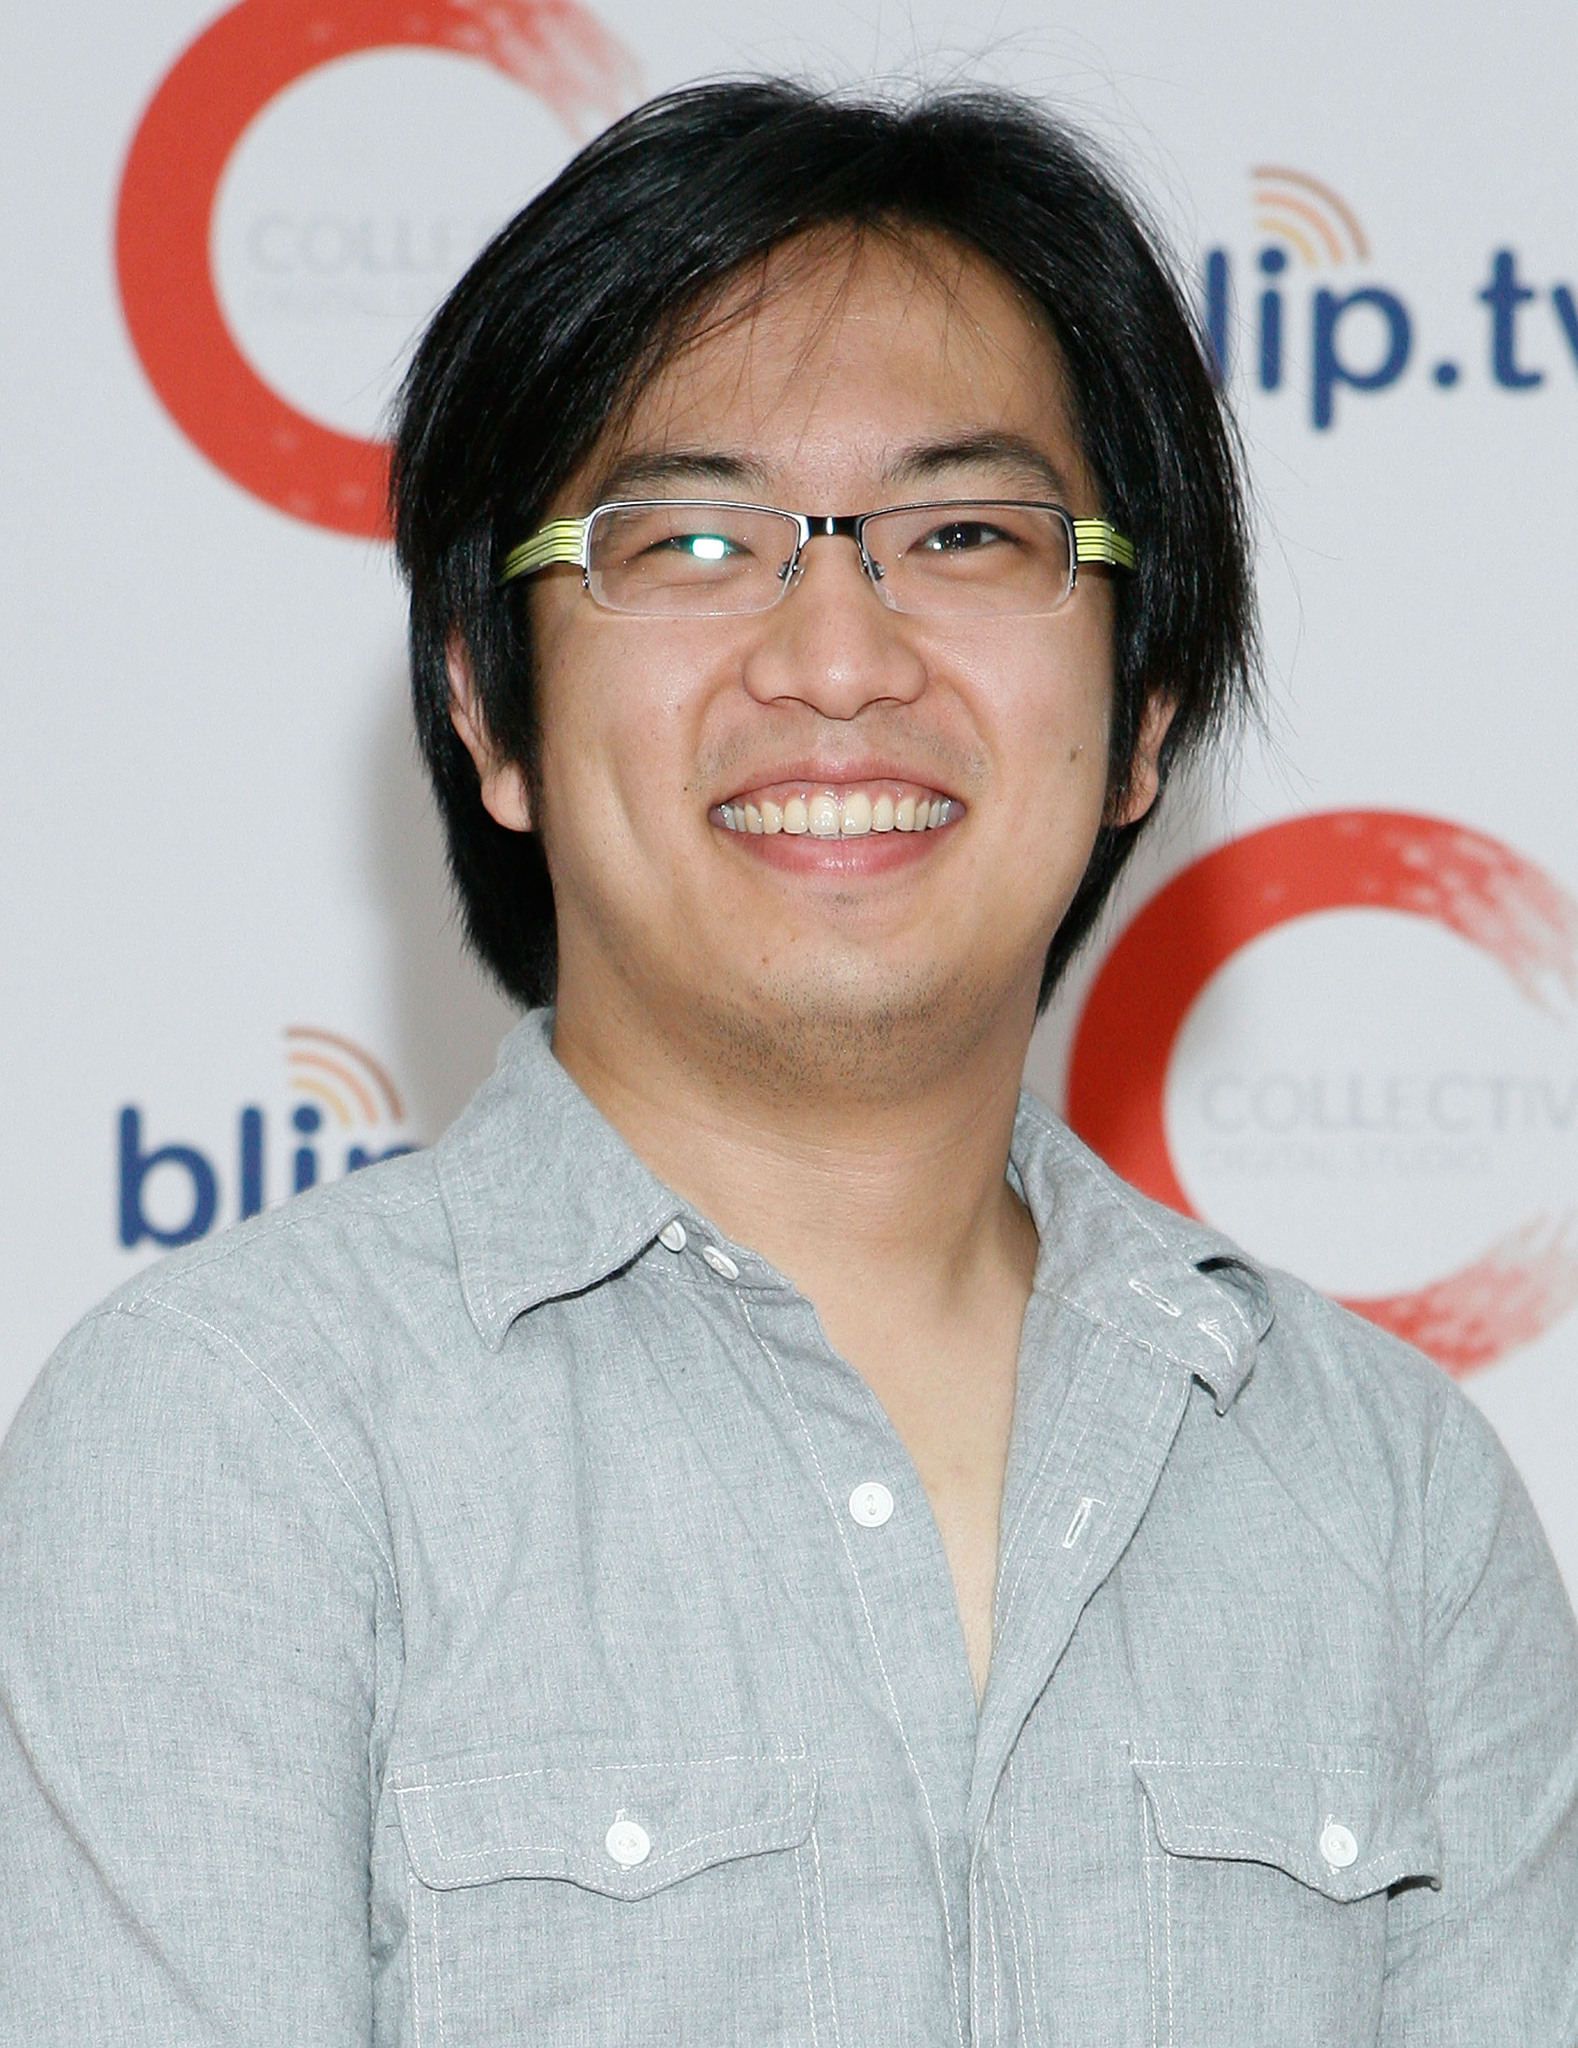 The 35-year old son of father (?) and mother(?) Freddie Wong in 2021 photo. Freddie Wong earned a  million dollar salary - leaving the net worth at  million in 2021